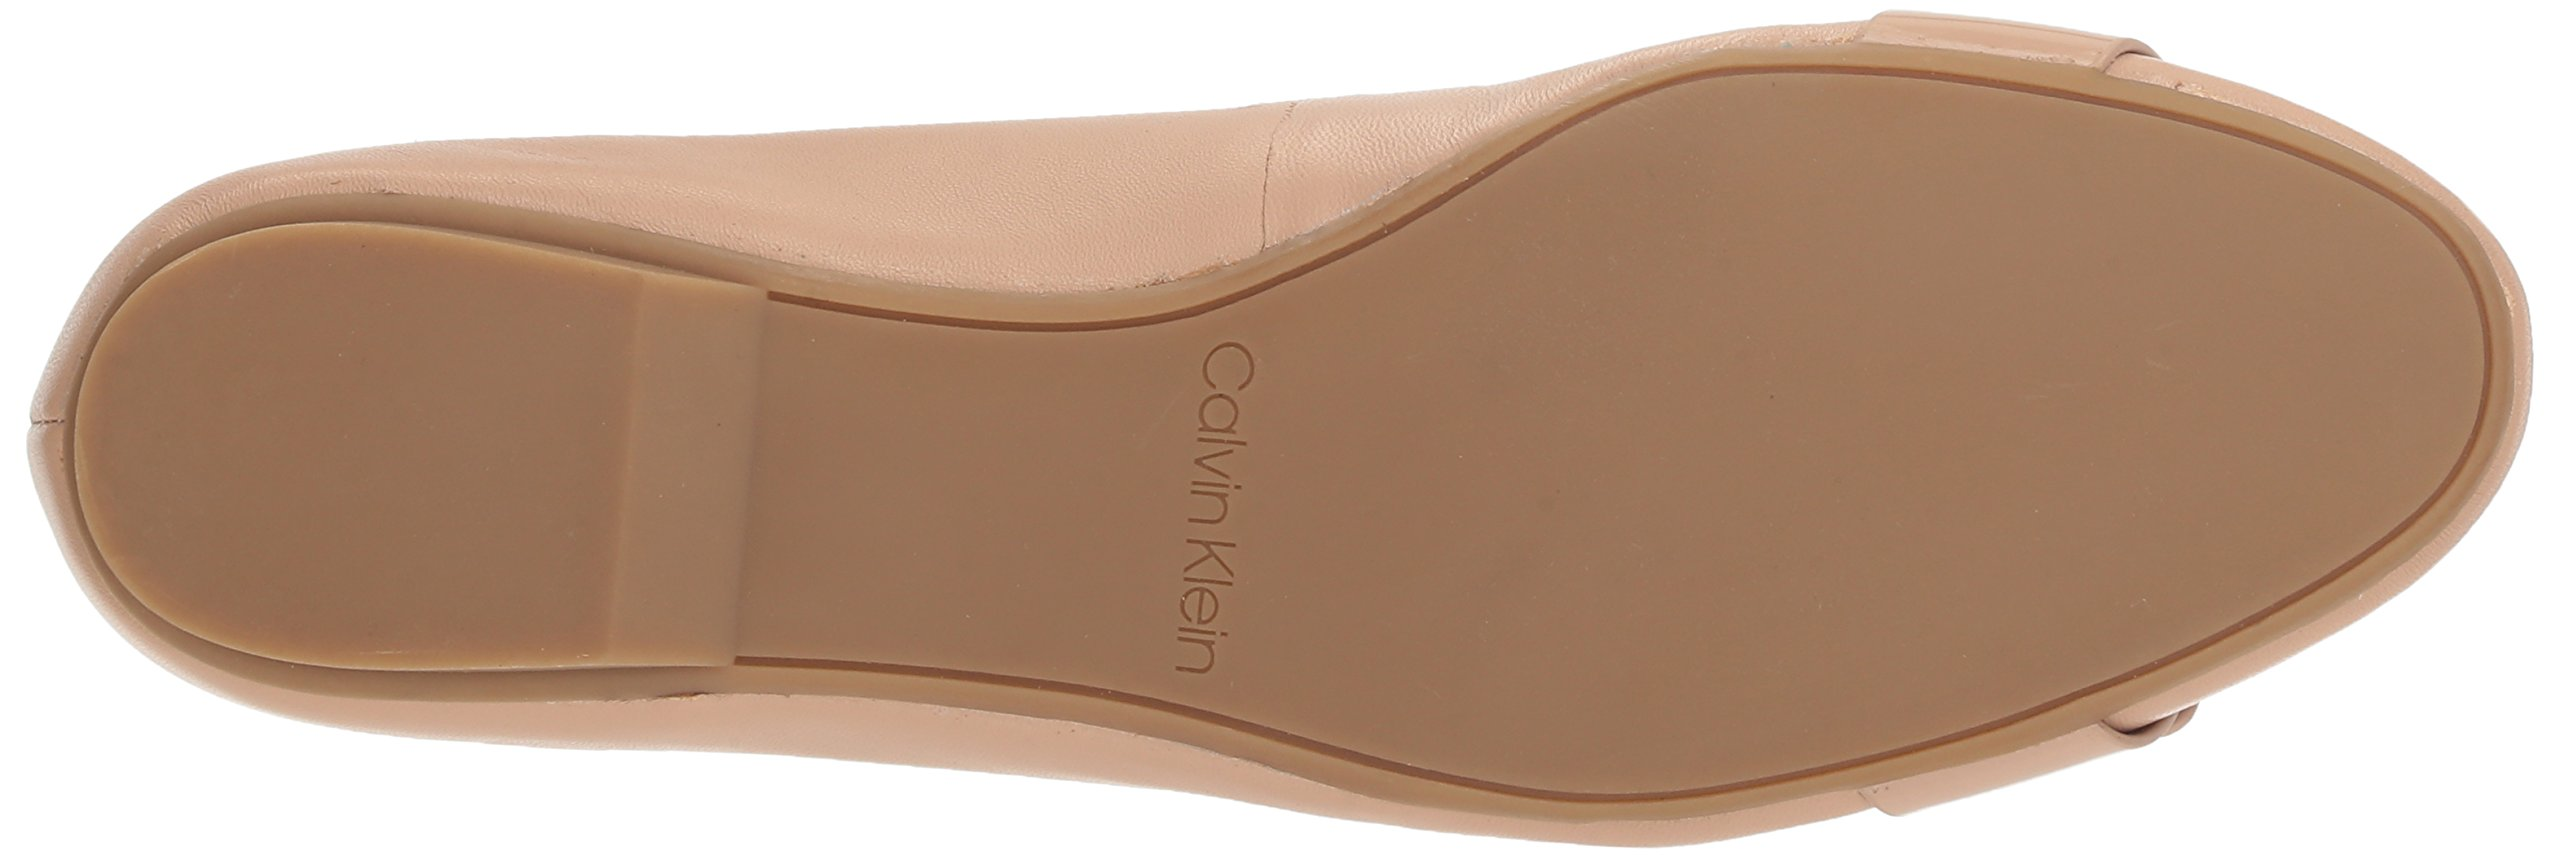 Calvin-Klein-Women-039-s-Oneta-Ballet-Flat-Black-5-M-Choose-SZ-color thumbnail 28